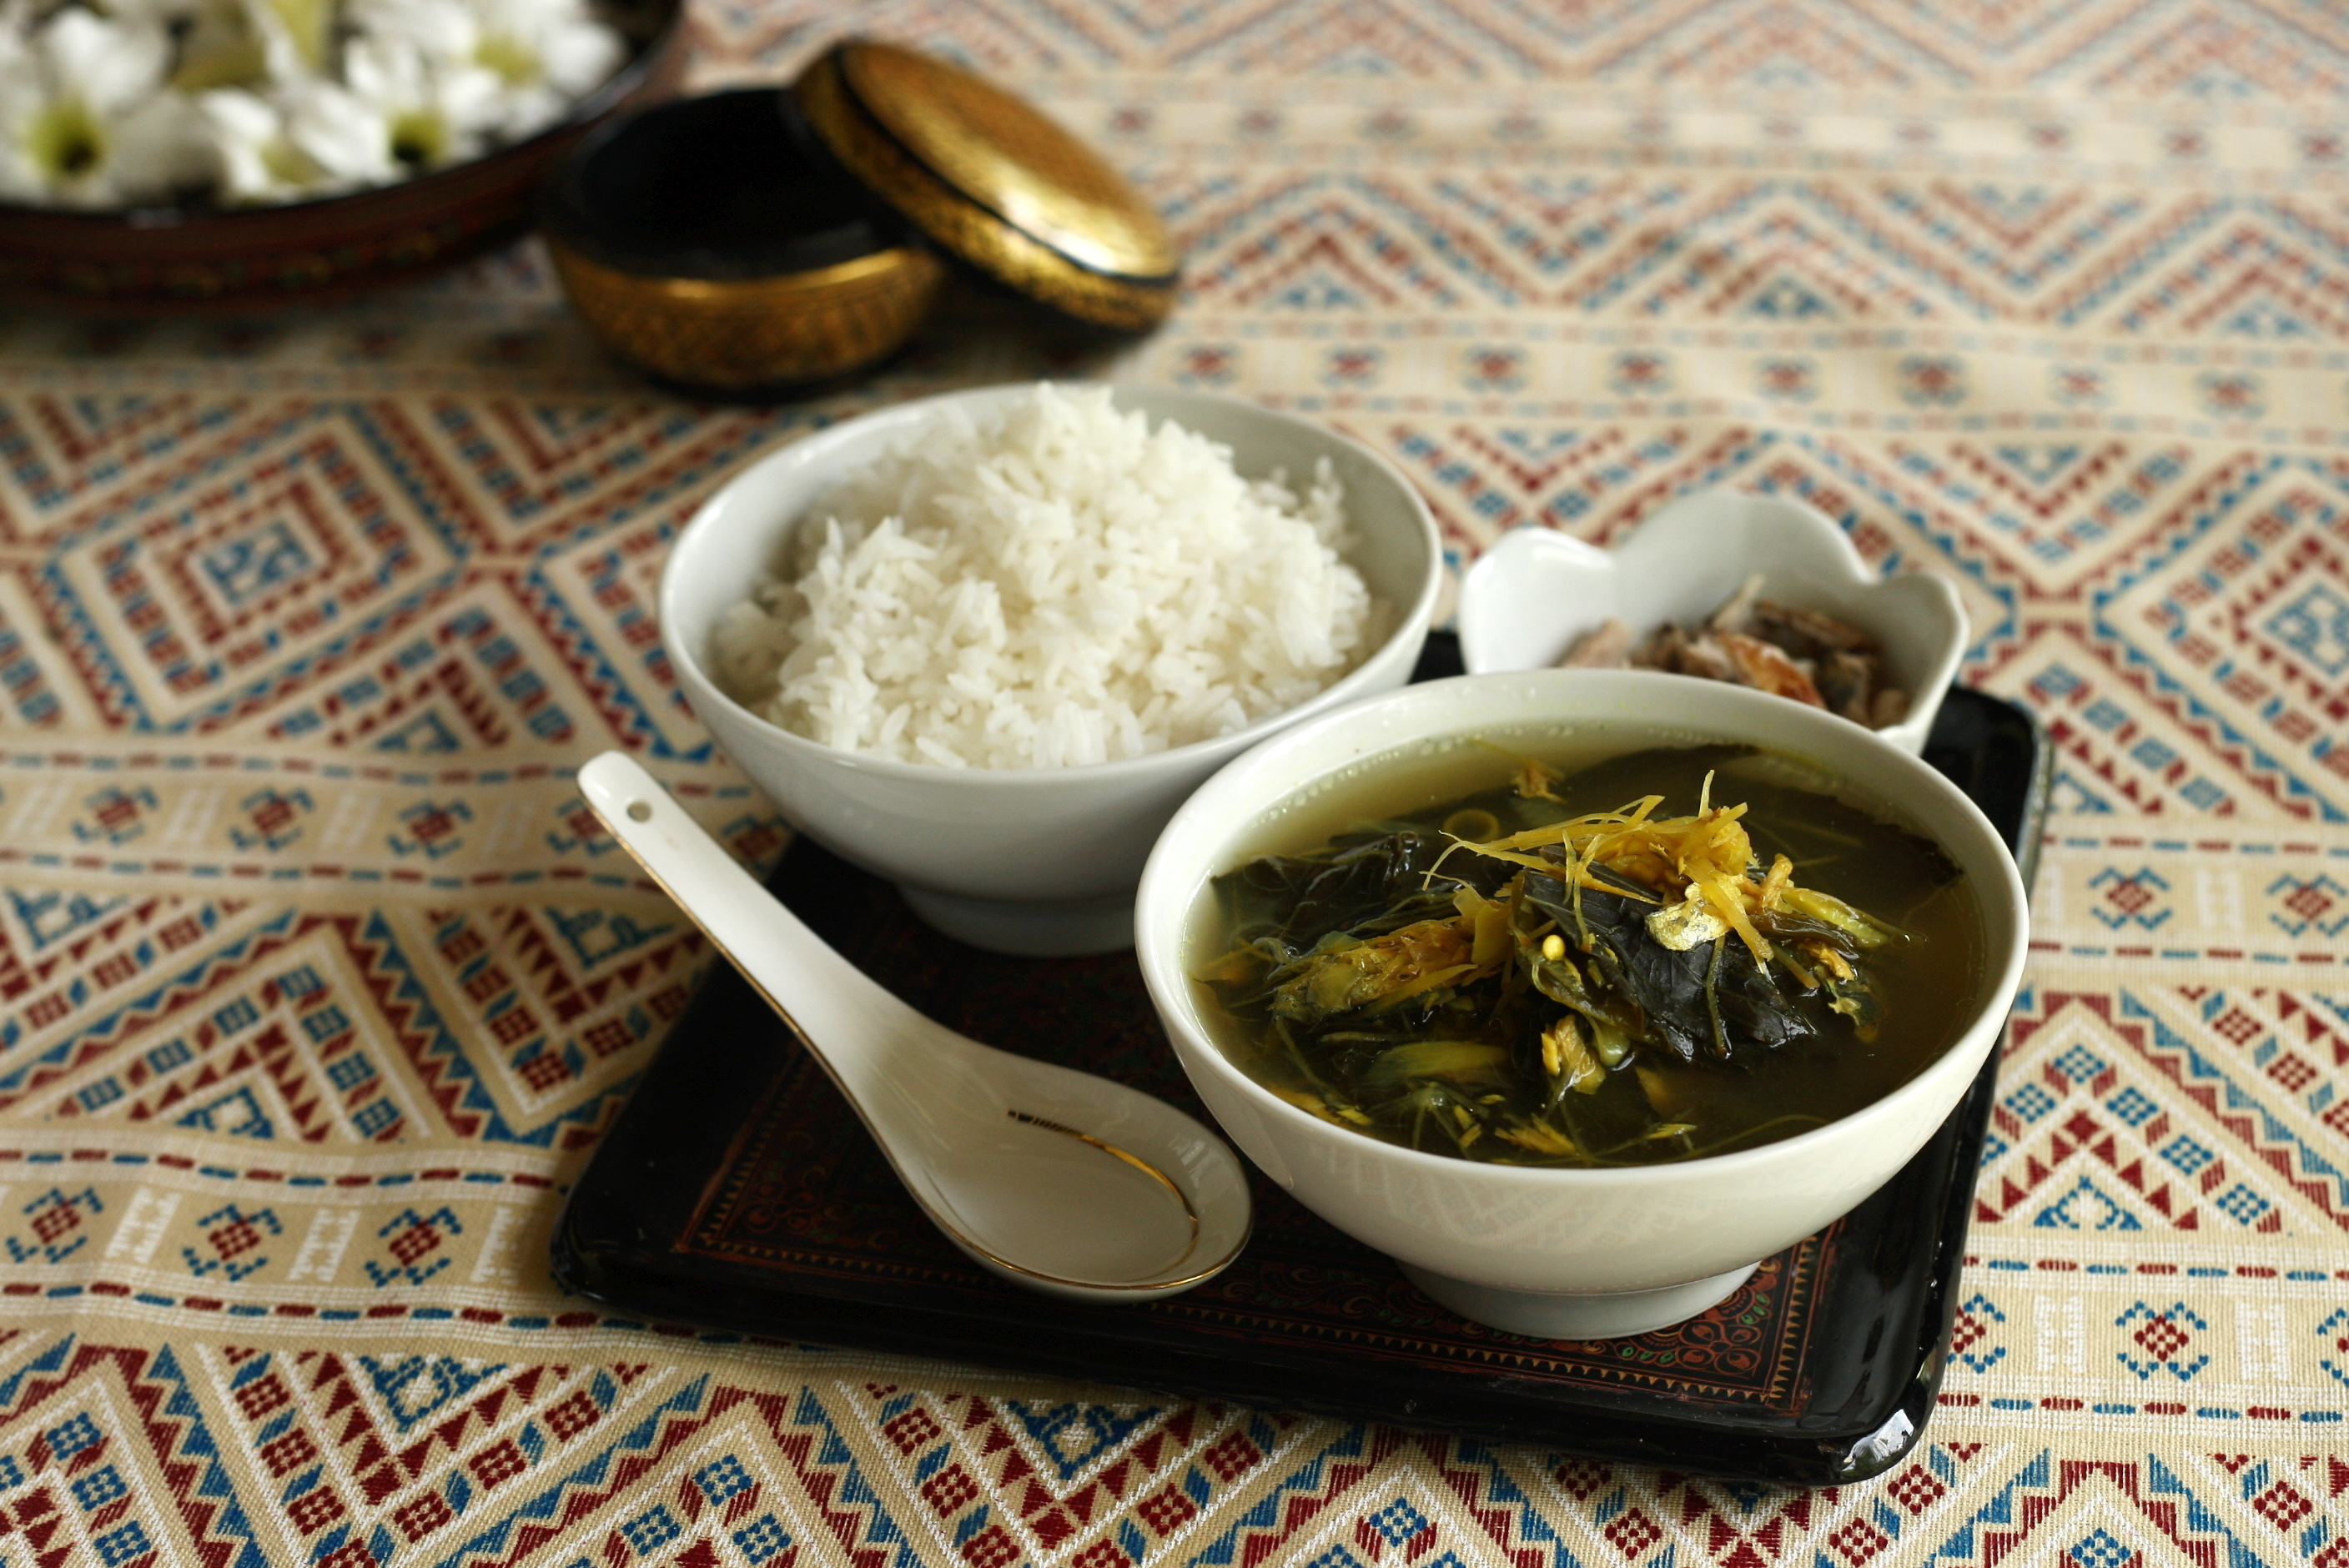 ROSELLE LEAF SOUP WITH GRILLED FISH